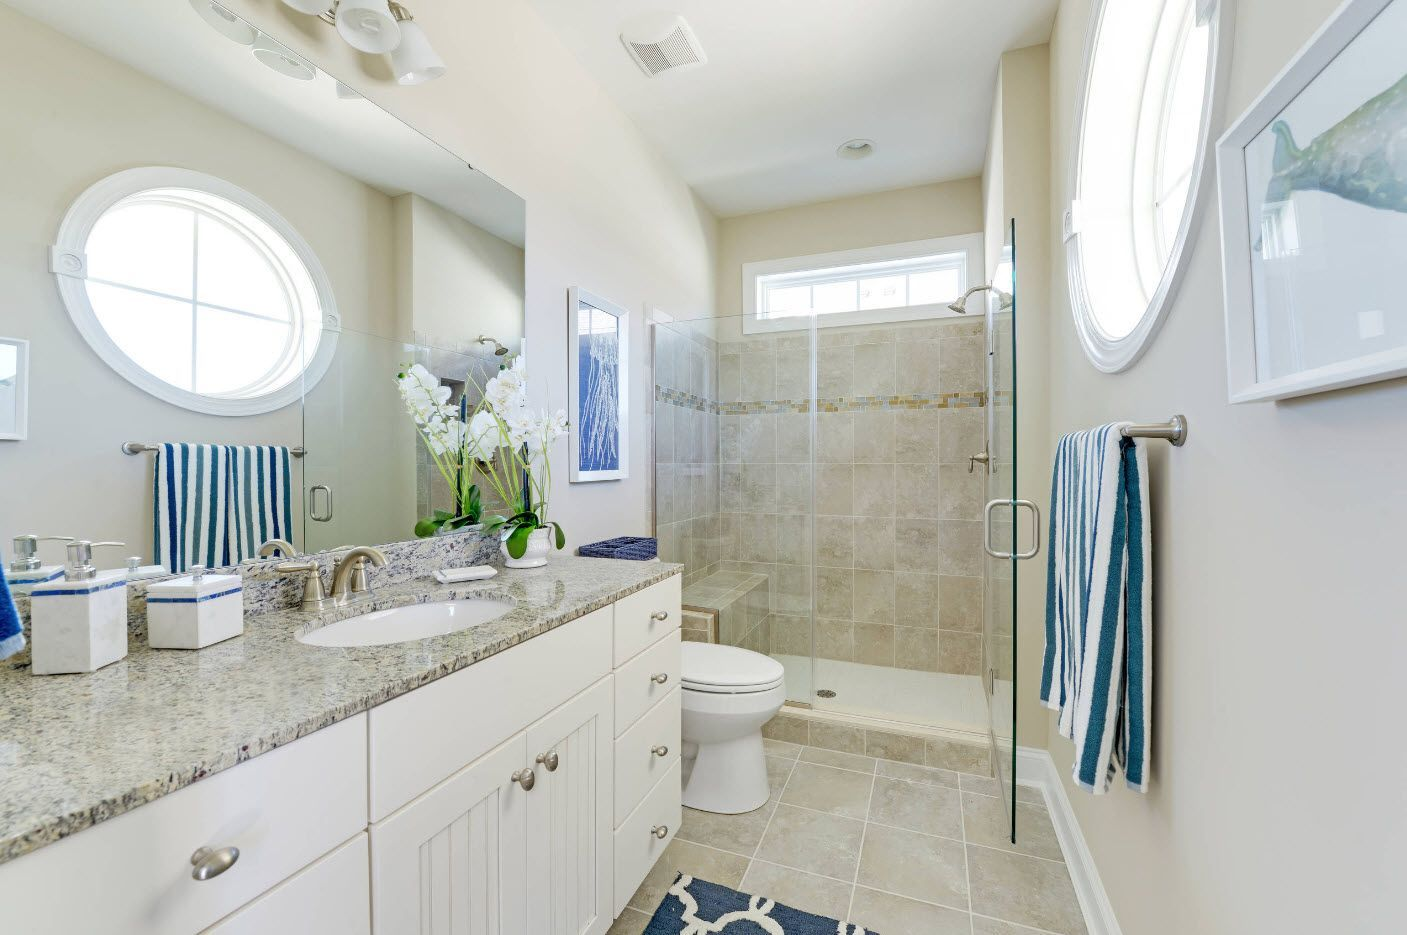 Gray and white small bathroom contemporary style